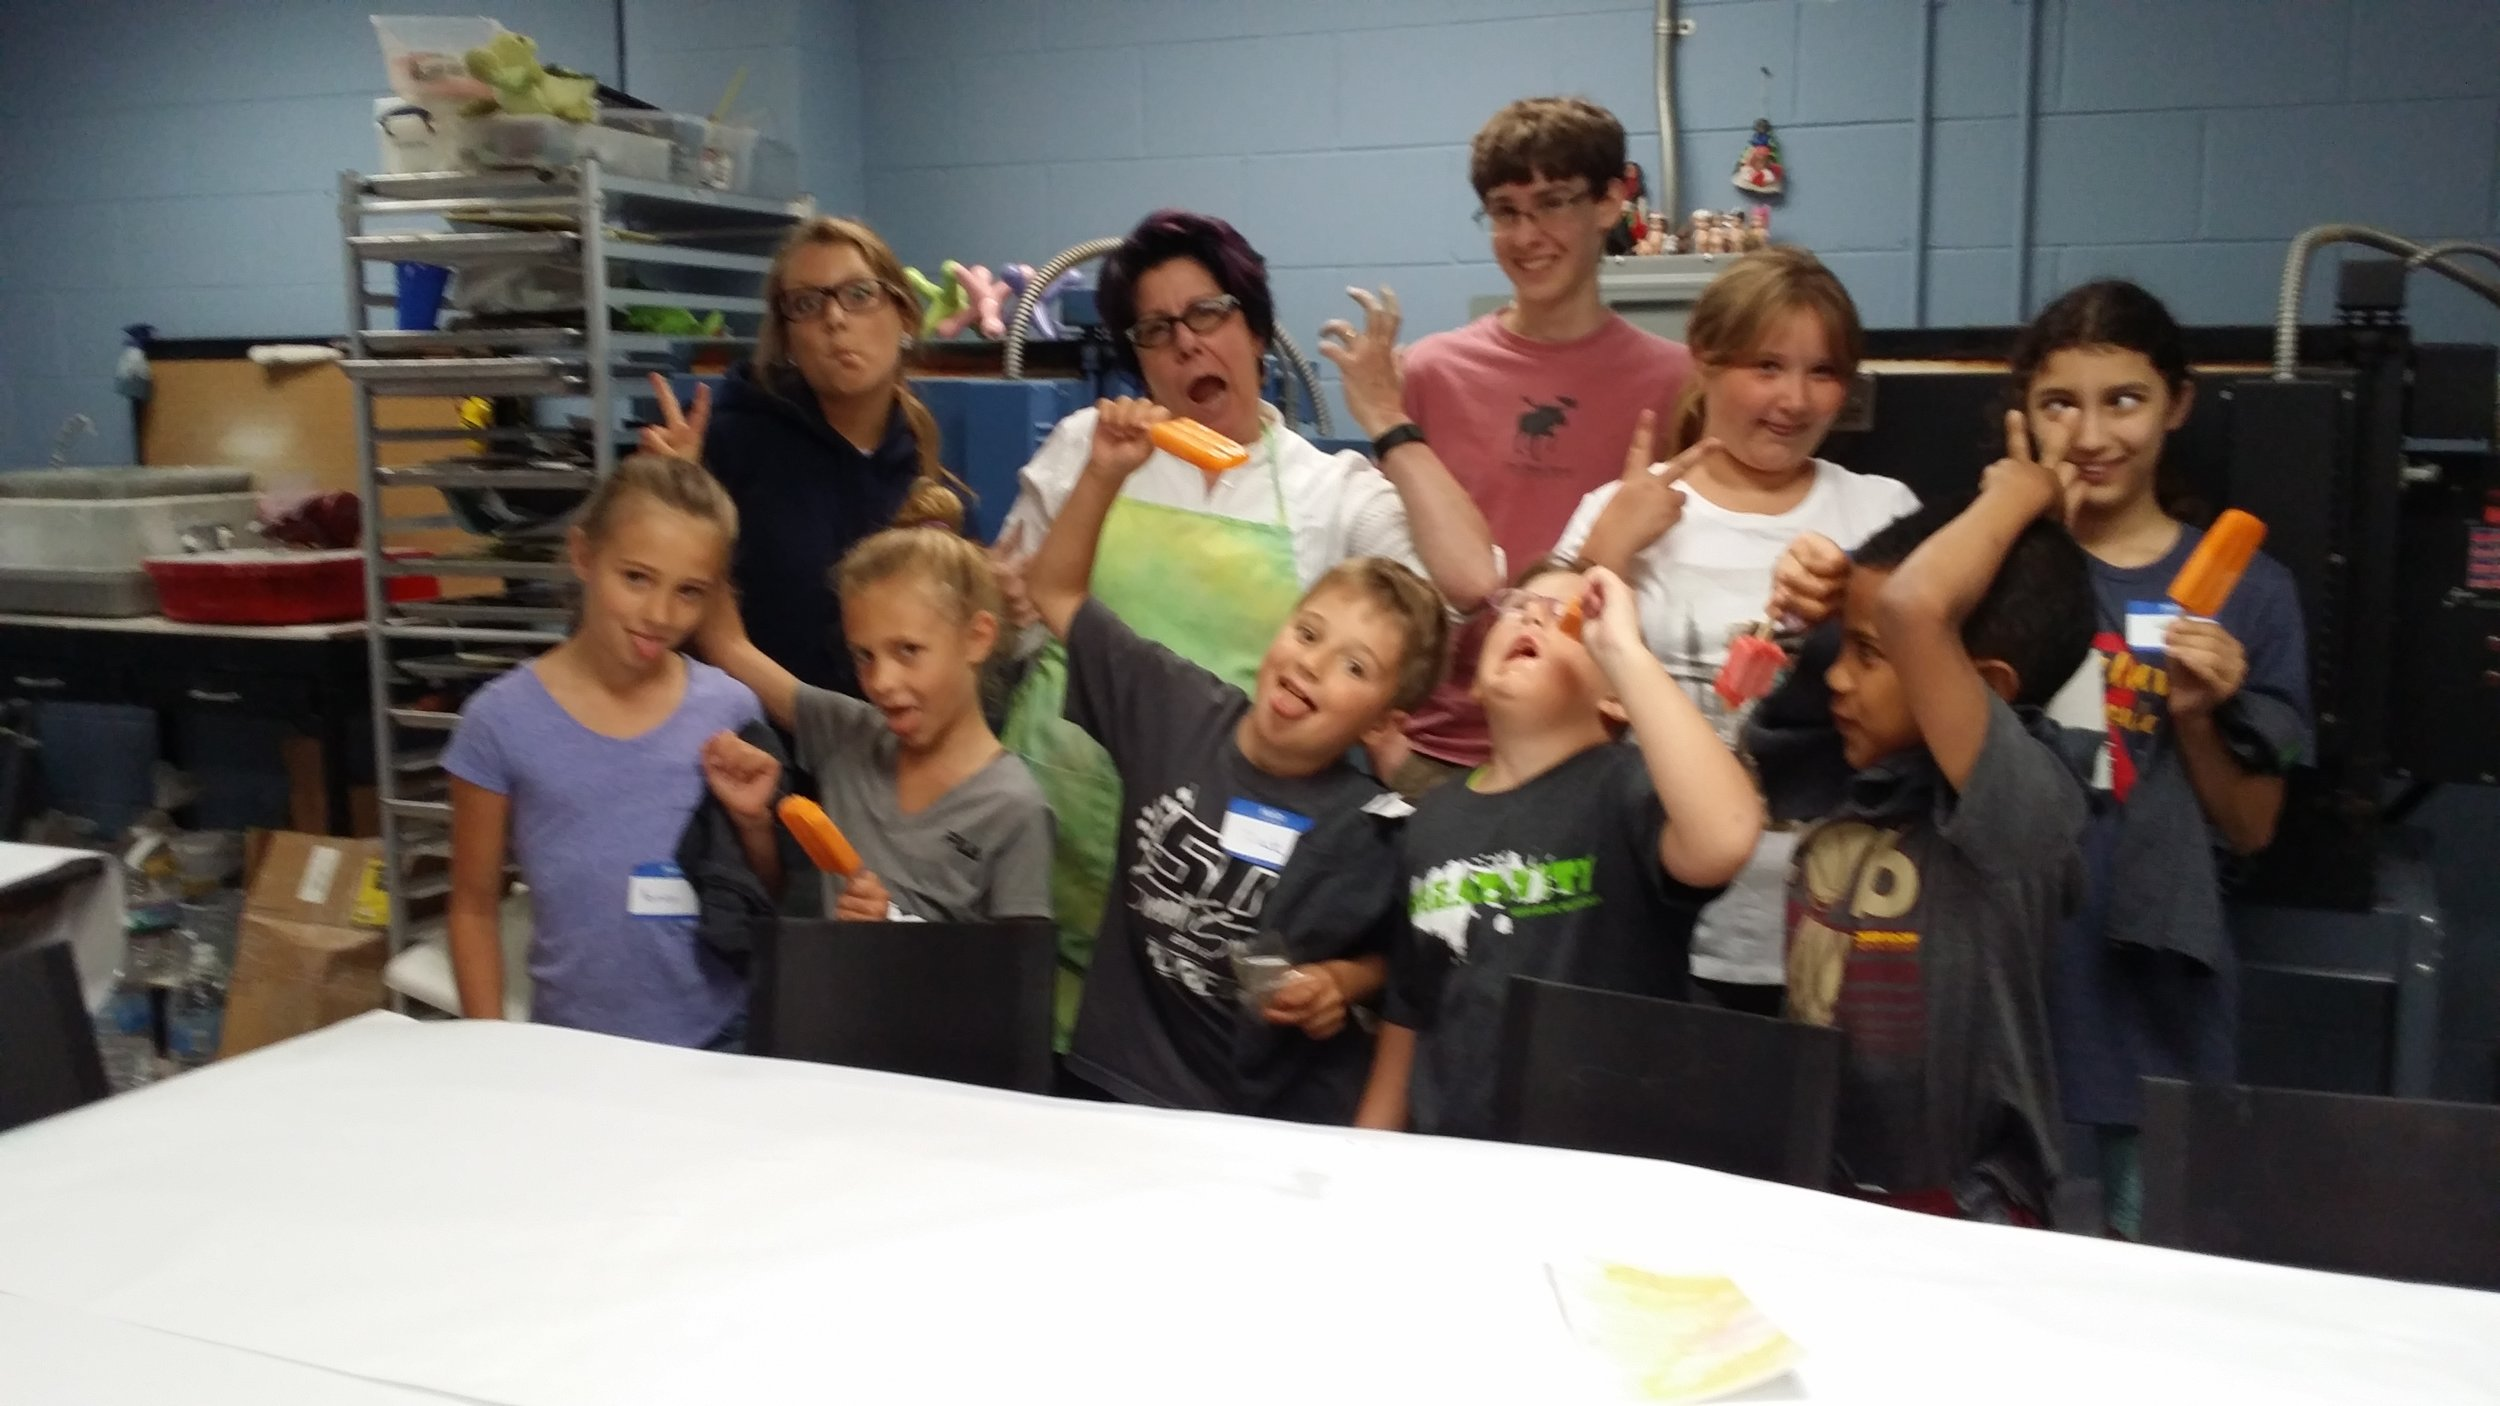 Popsicle time at Perrysburg's Glass Camp!